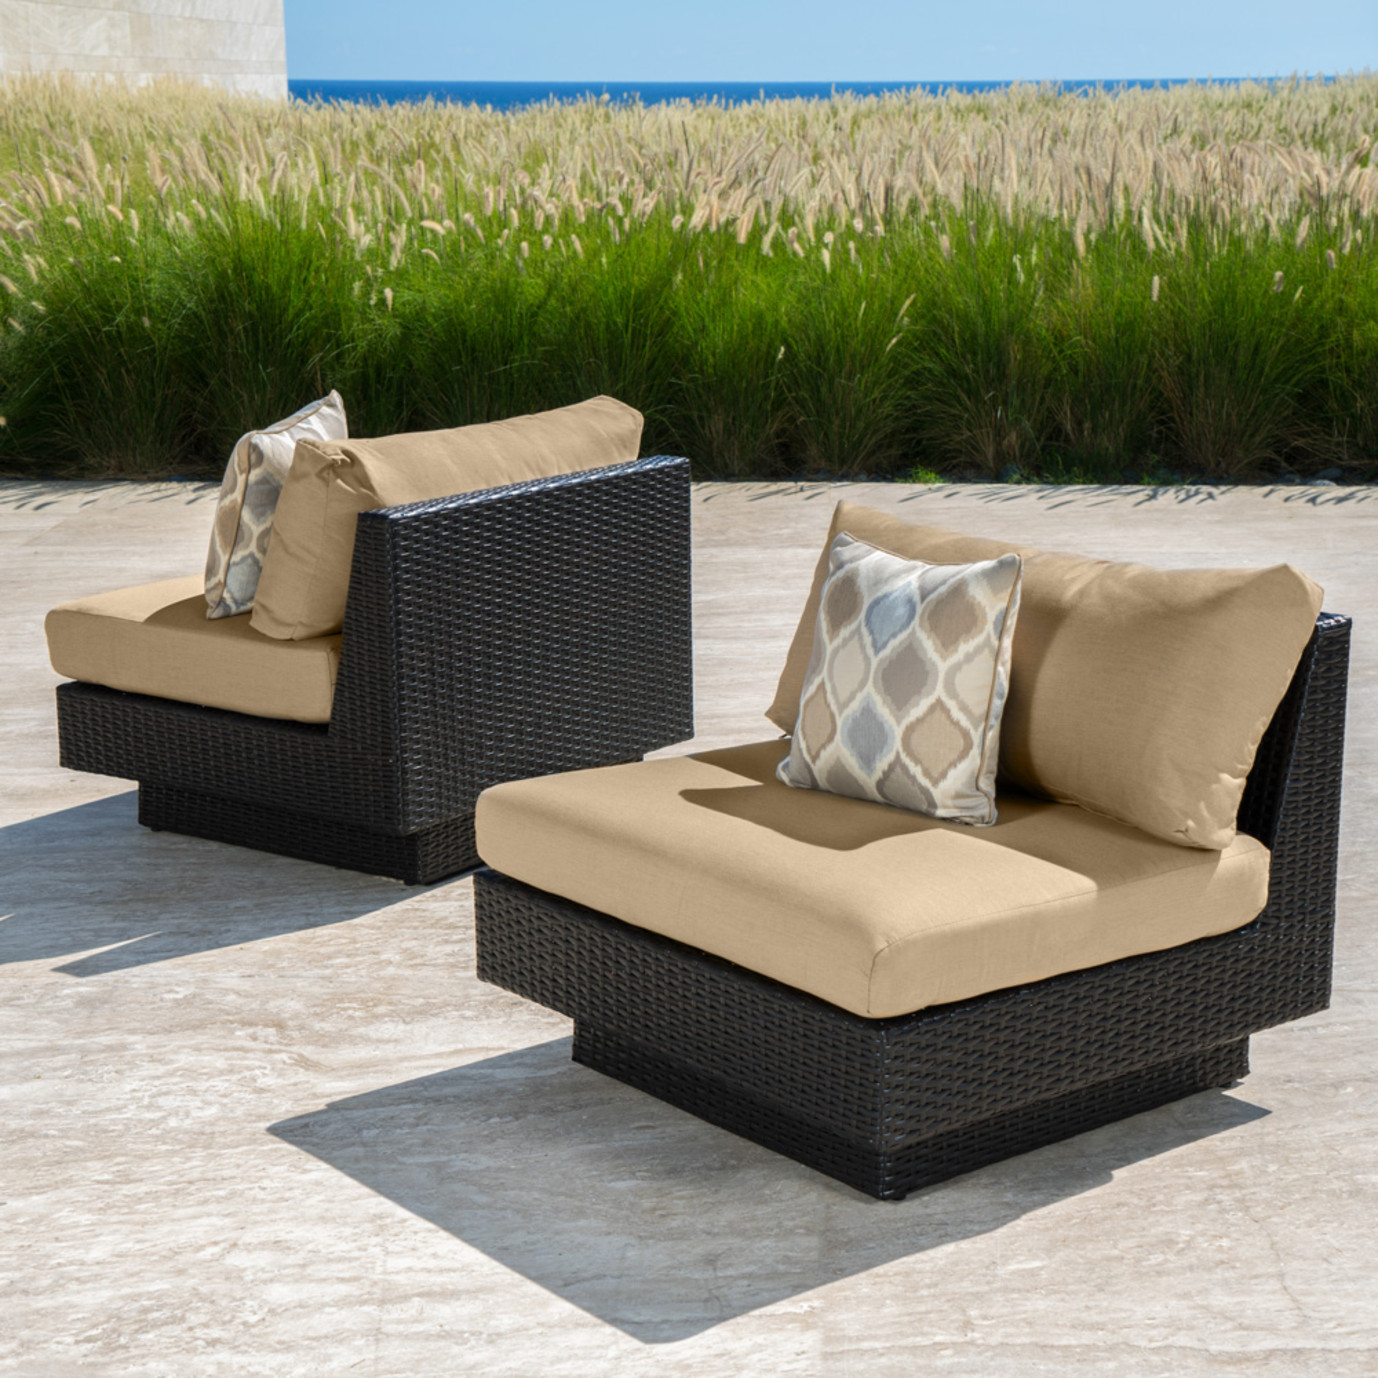 Portofino™ Comfort Armless Chairs - Heather Beige